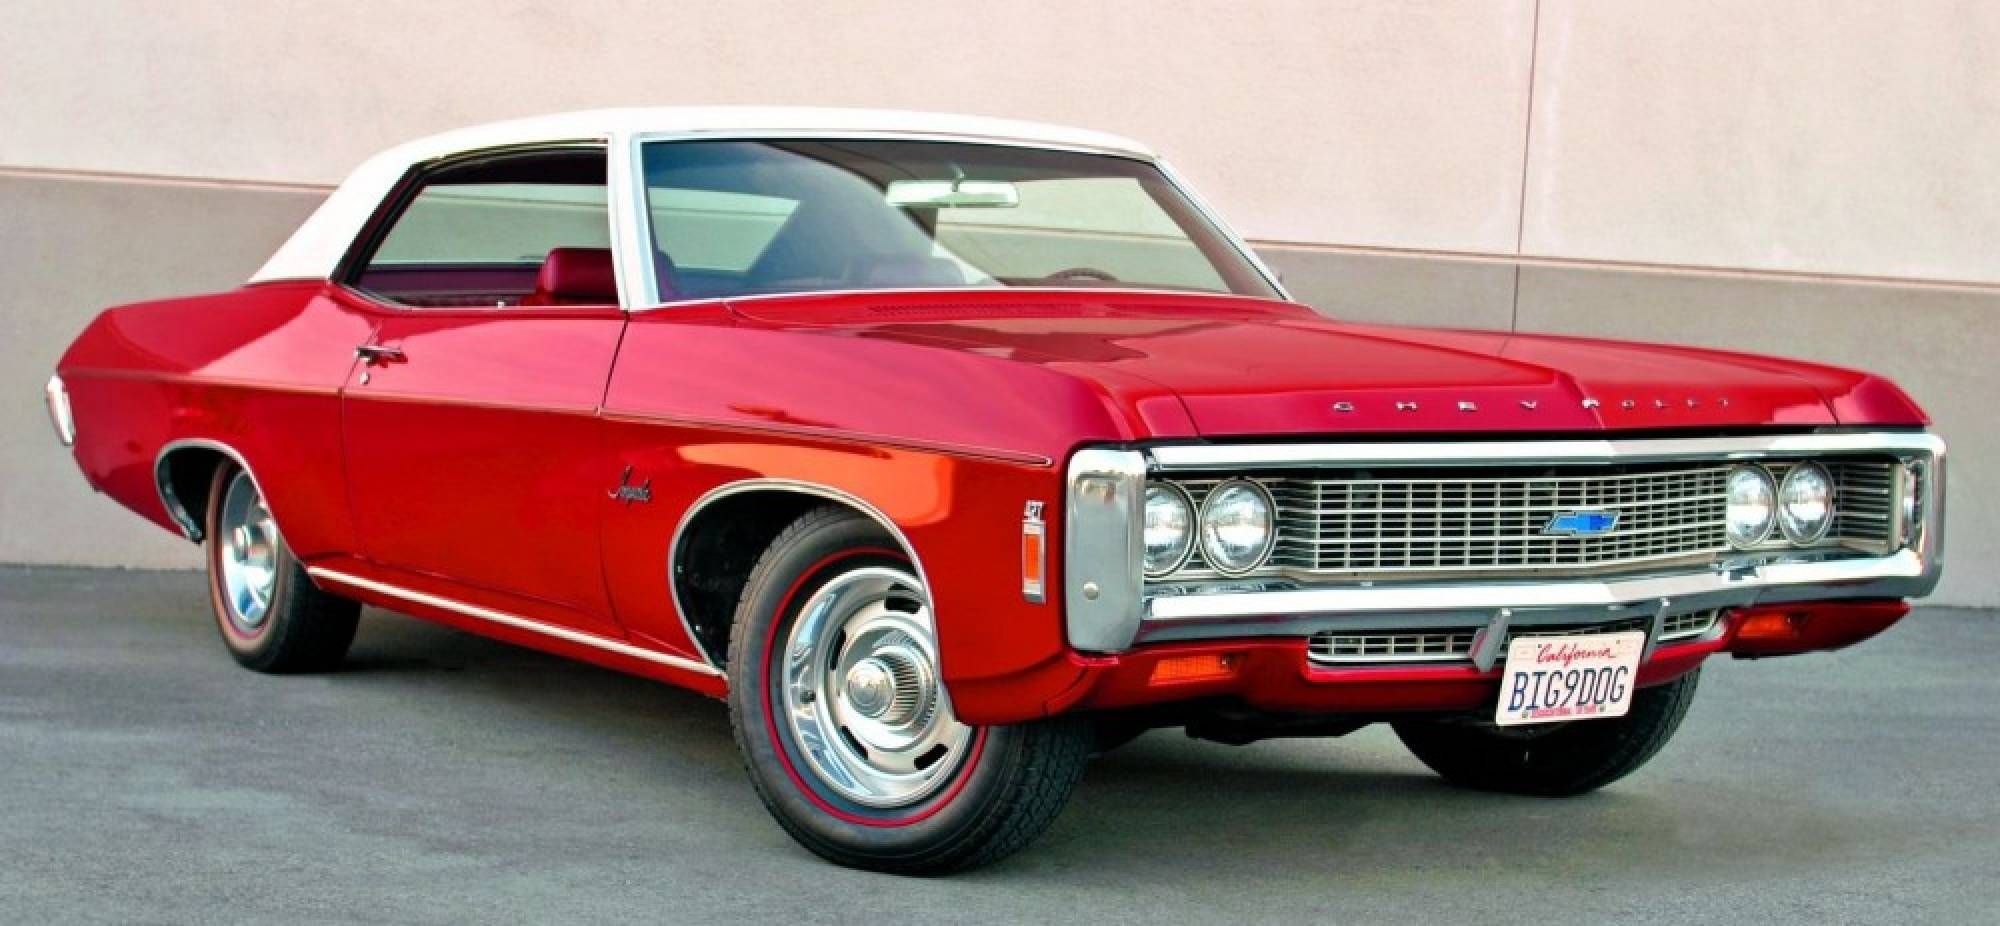 1969 chevrolet impala and full size cars bad a cars. Black Bedroom Furniture Sets. Home Design Ideas